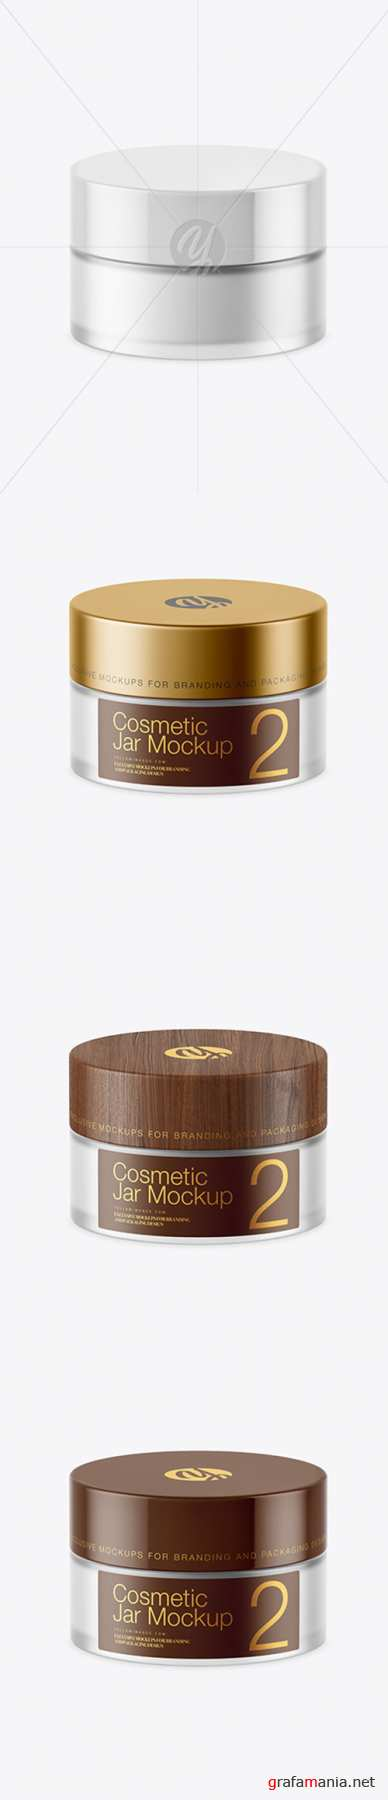 Frosted Glass Cosmetic Jar Mockup 45169 TIF